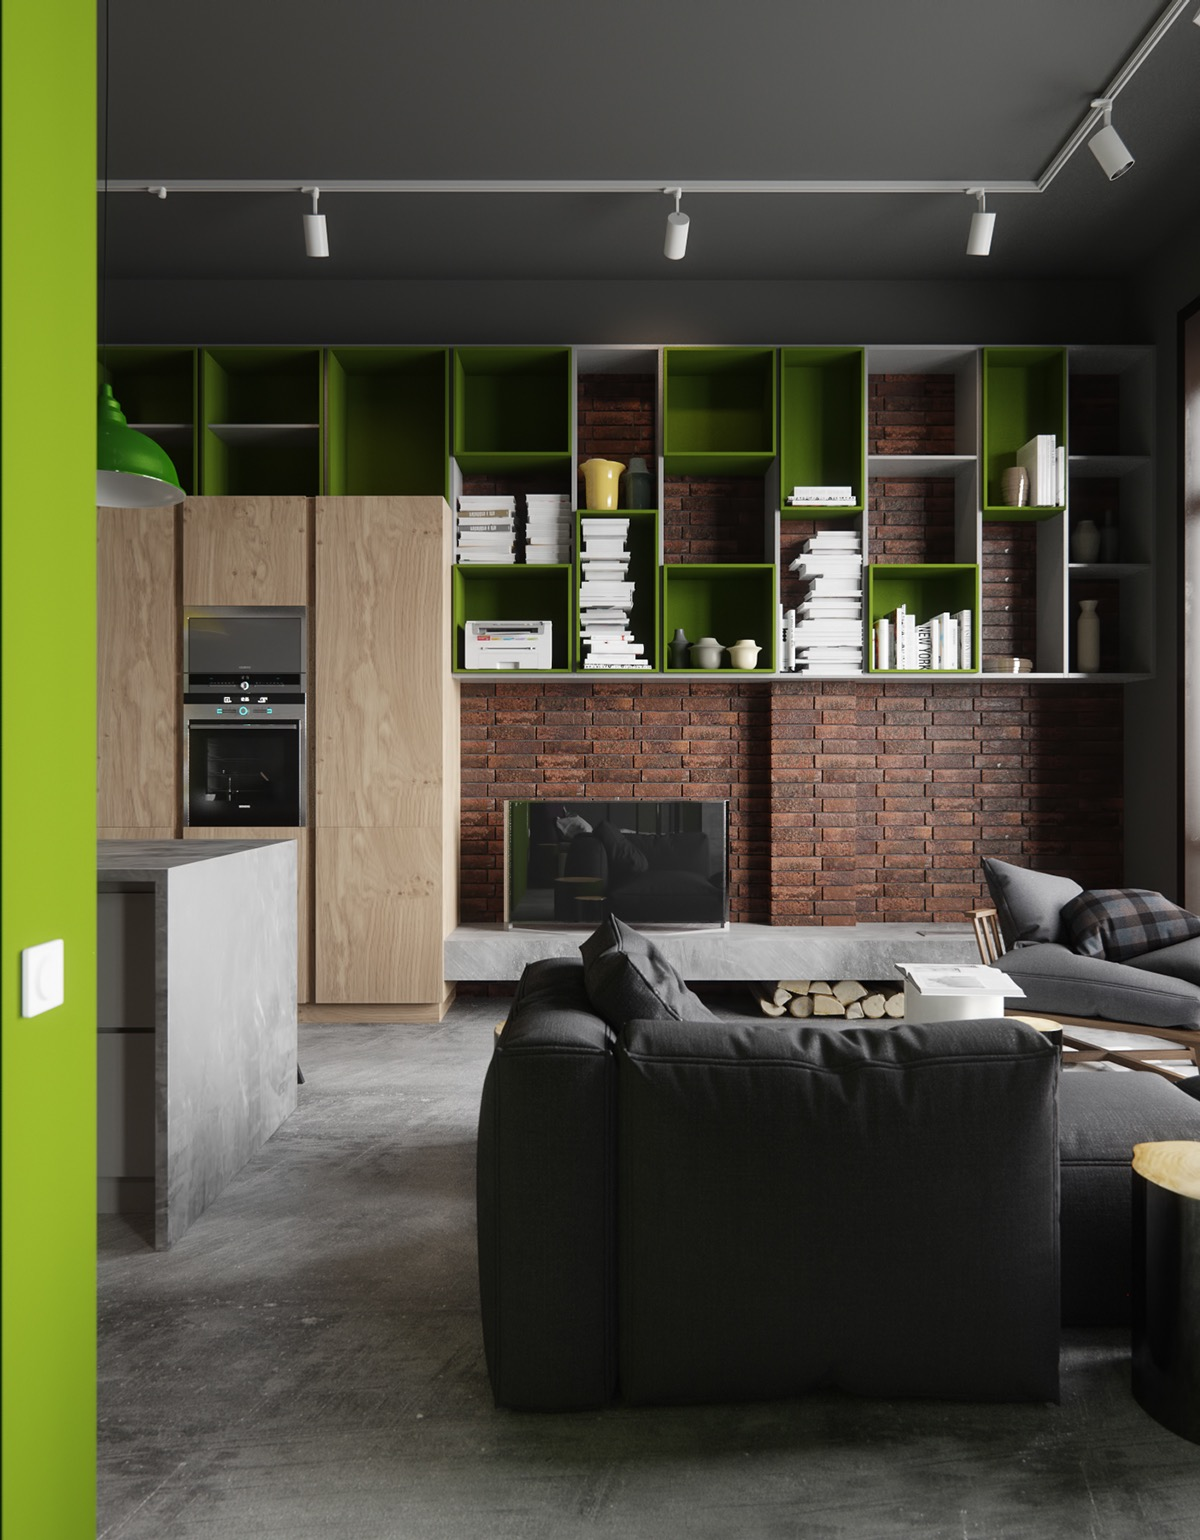 Lime green wall cabinets